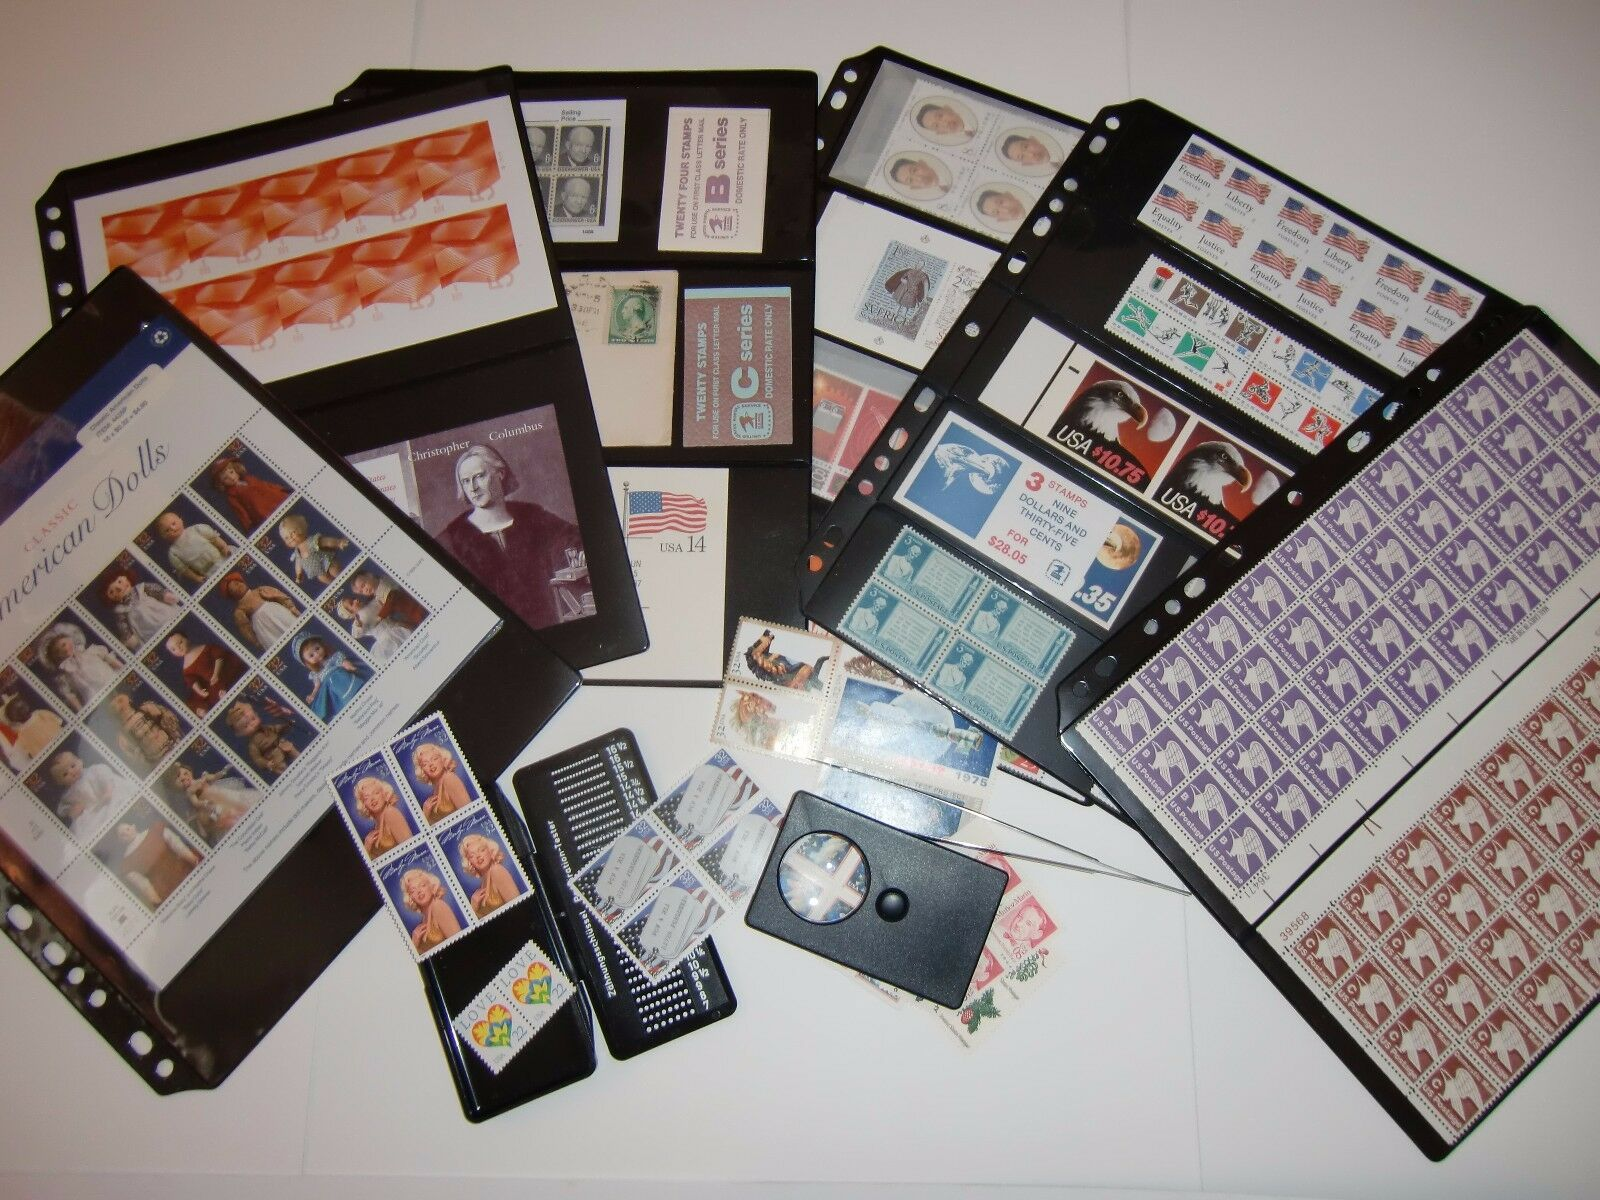 **ANCHOR New 10 Stock Pages 7S (7- rows) Sheets - (Black sheets)- Double sided.